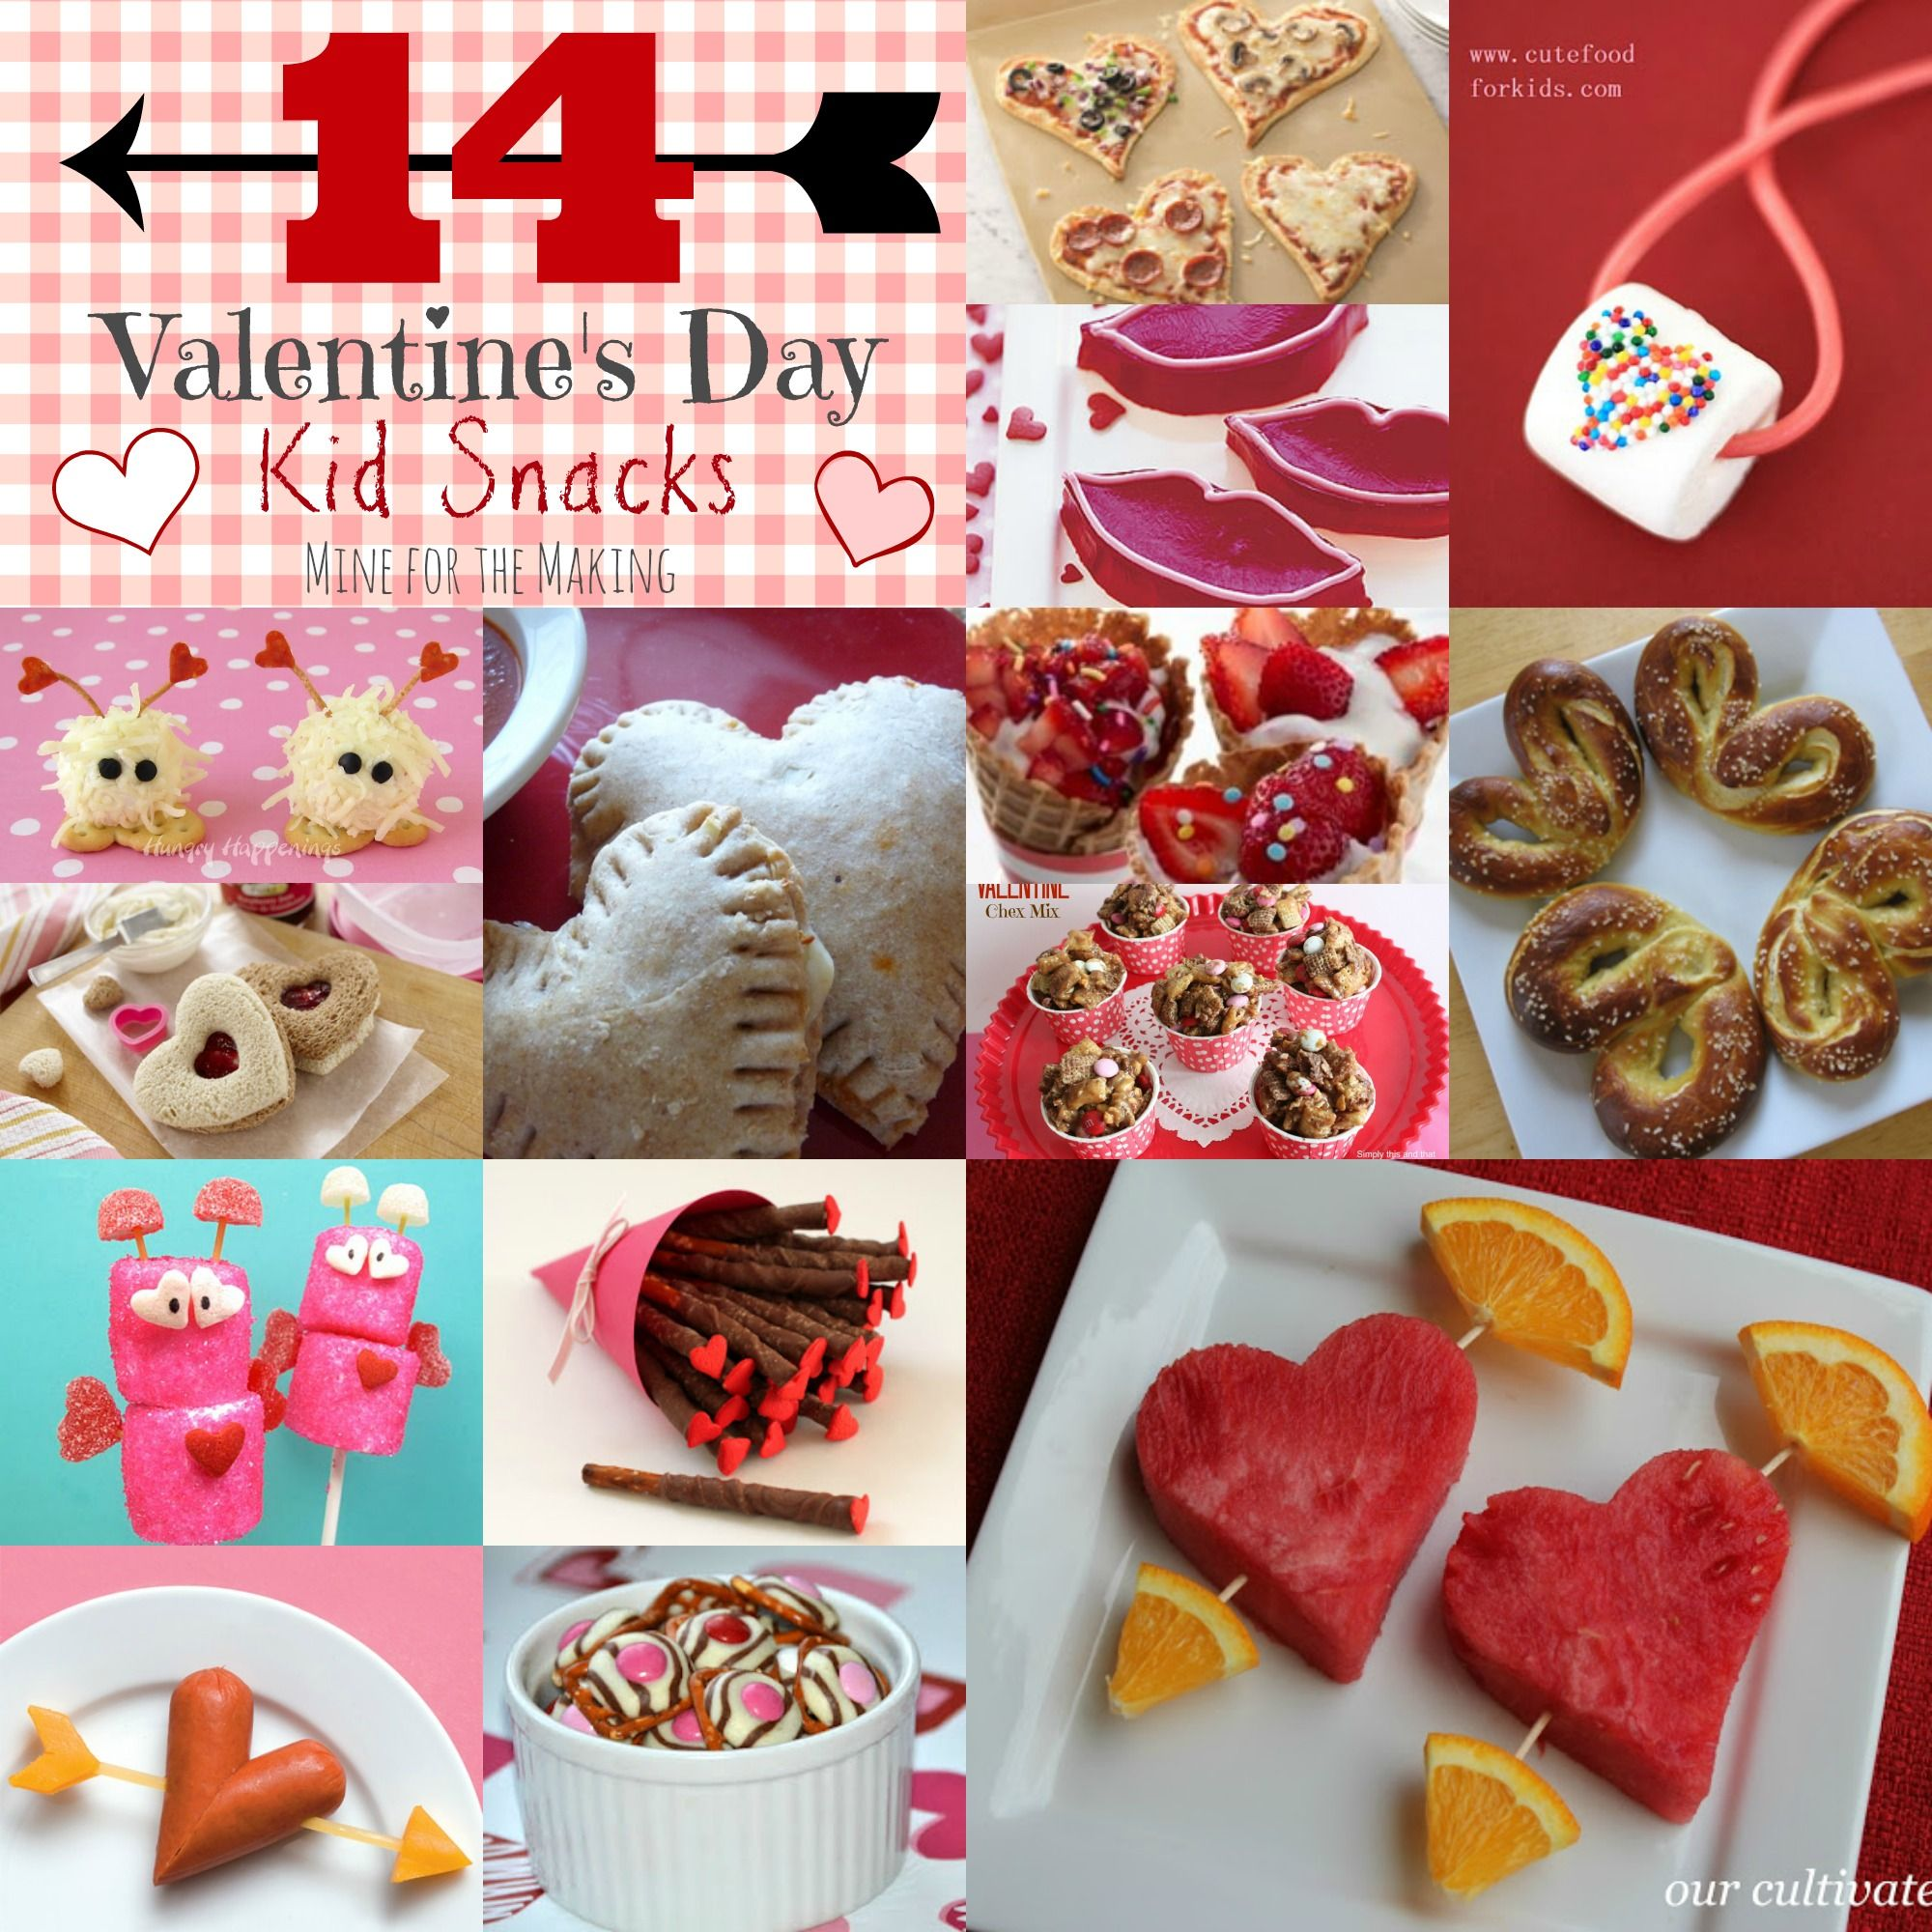 14 valentine's day kid snacks that are both kid and mom approved, Ideas